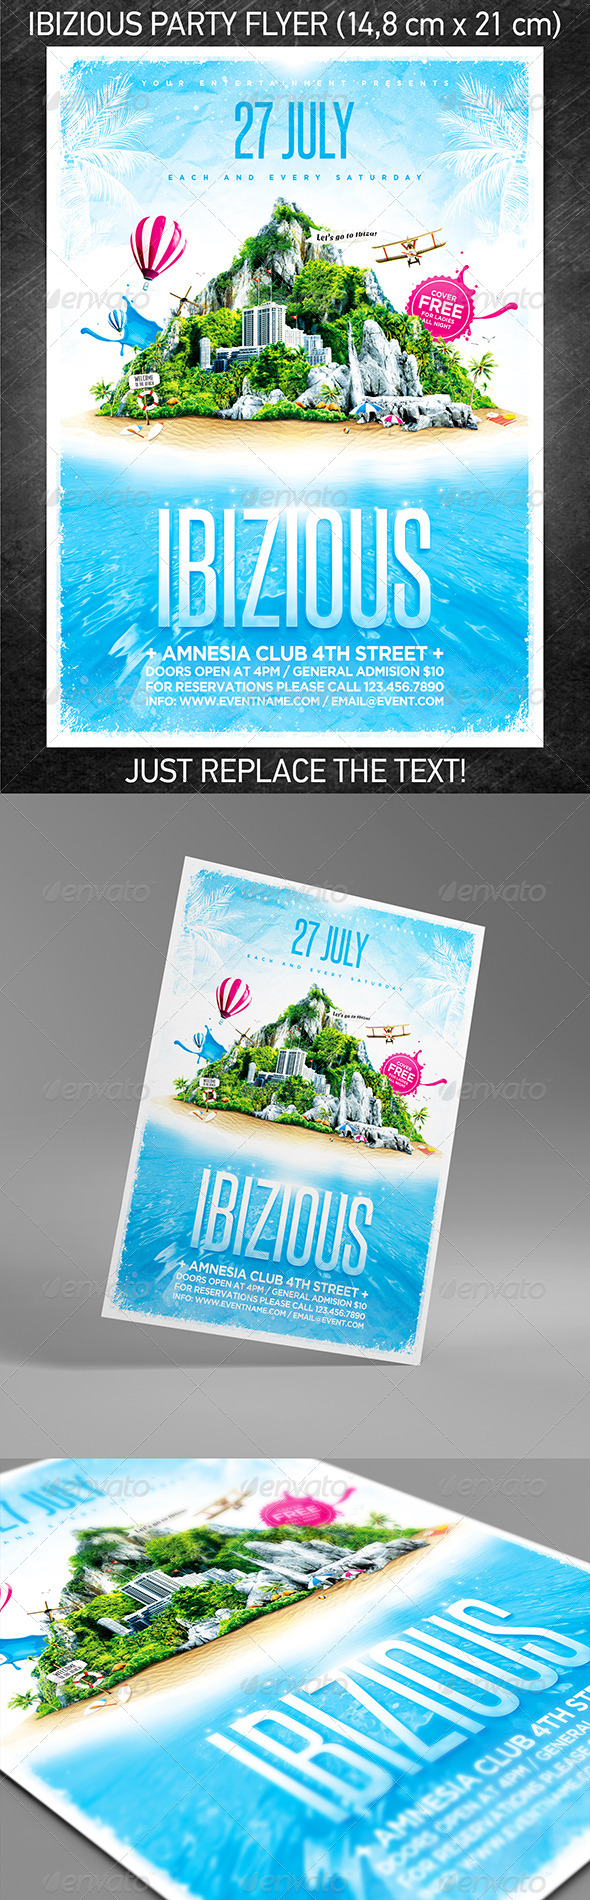 Ibizious Party Flyer - Clubs & Parties Events